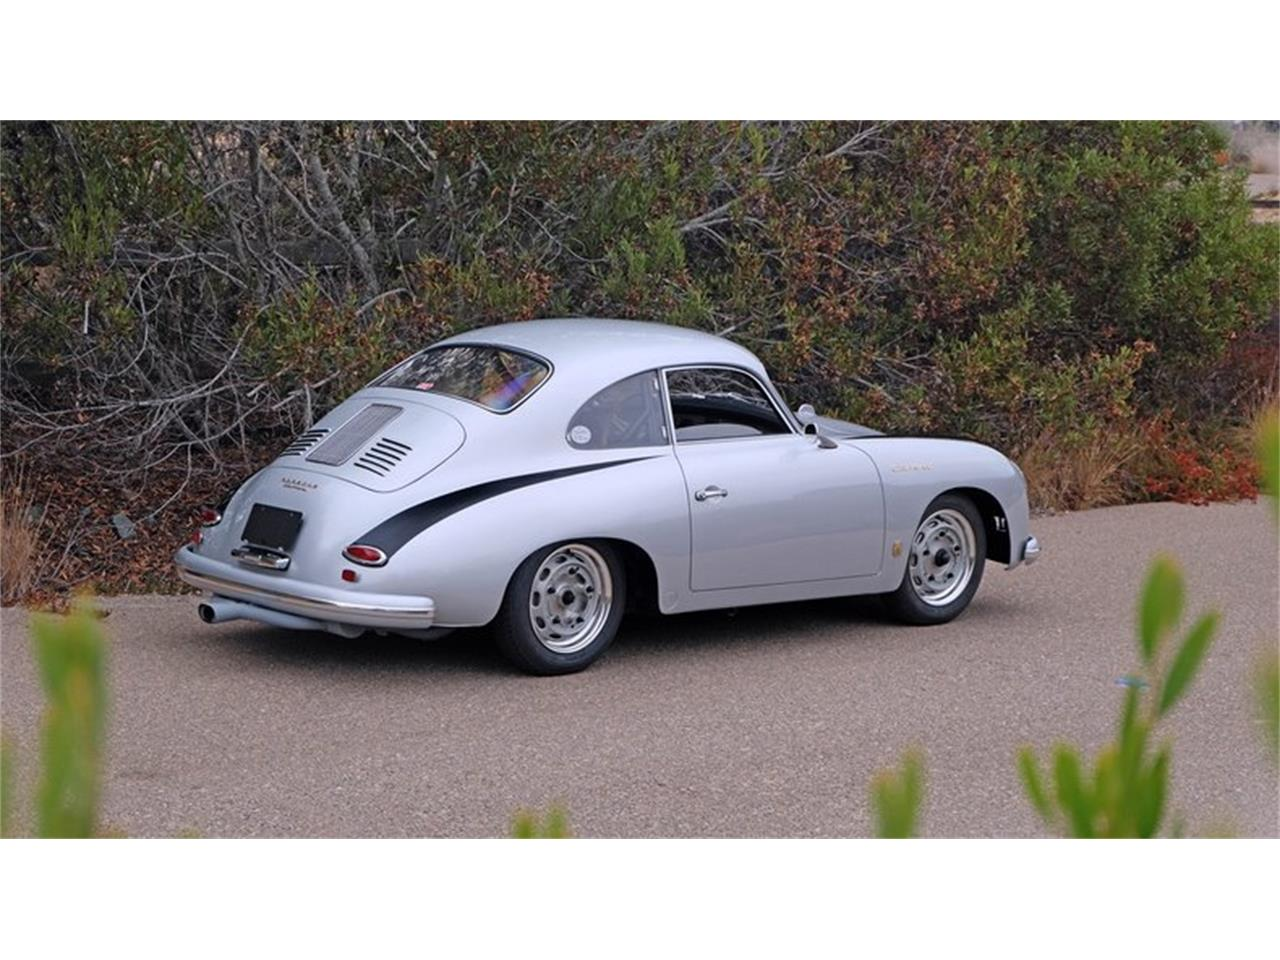 Large Picture of Classic 1957 Porsche 356 located in San Diego California Auction Vehicle Offered by Symbolic International - Q2HJ